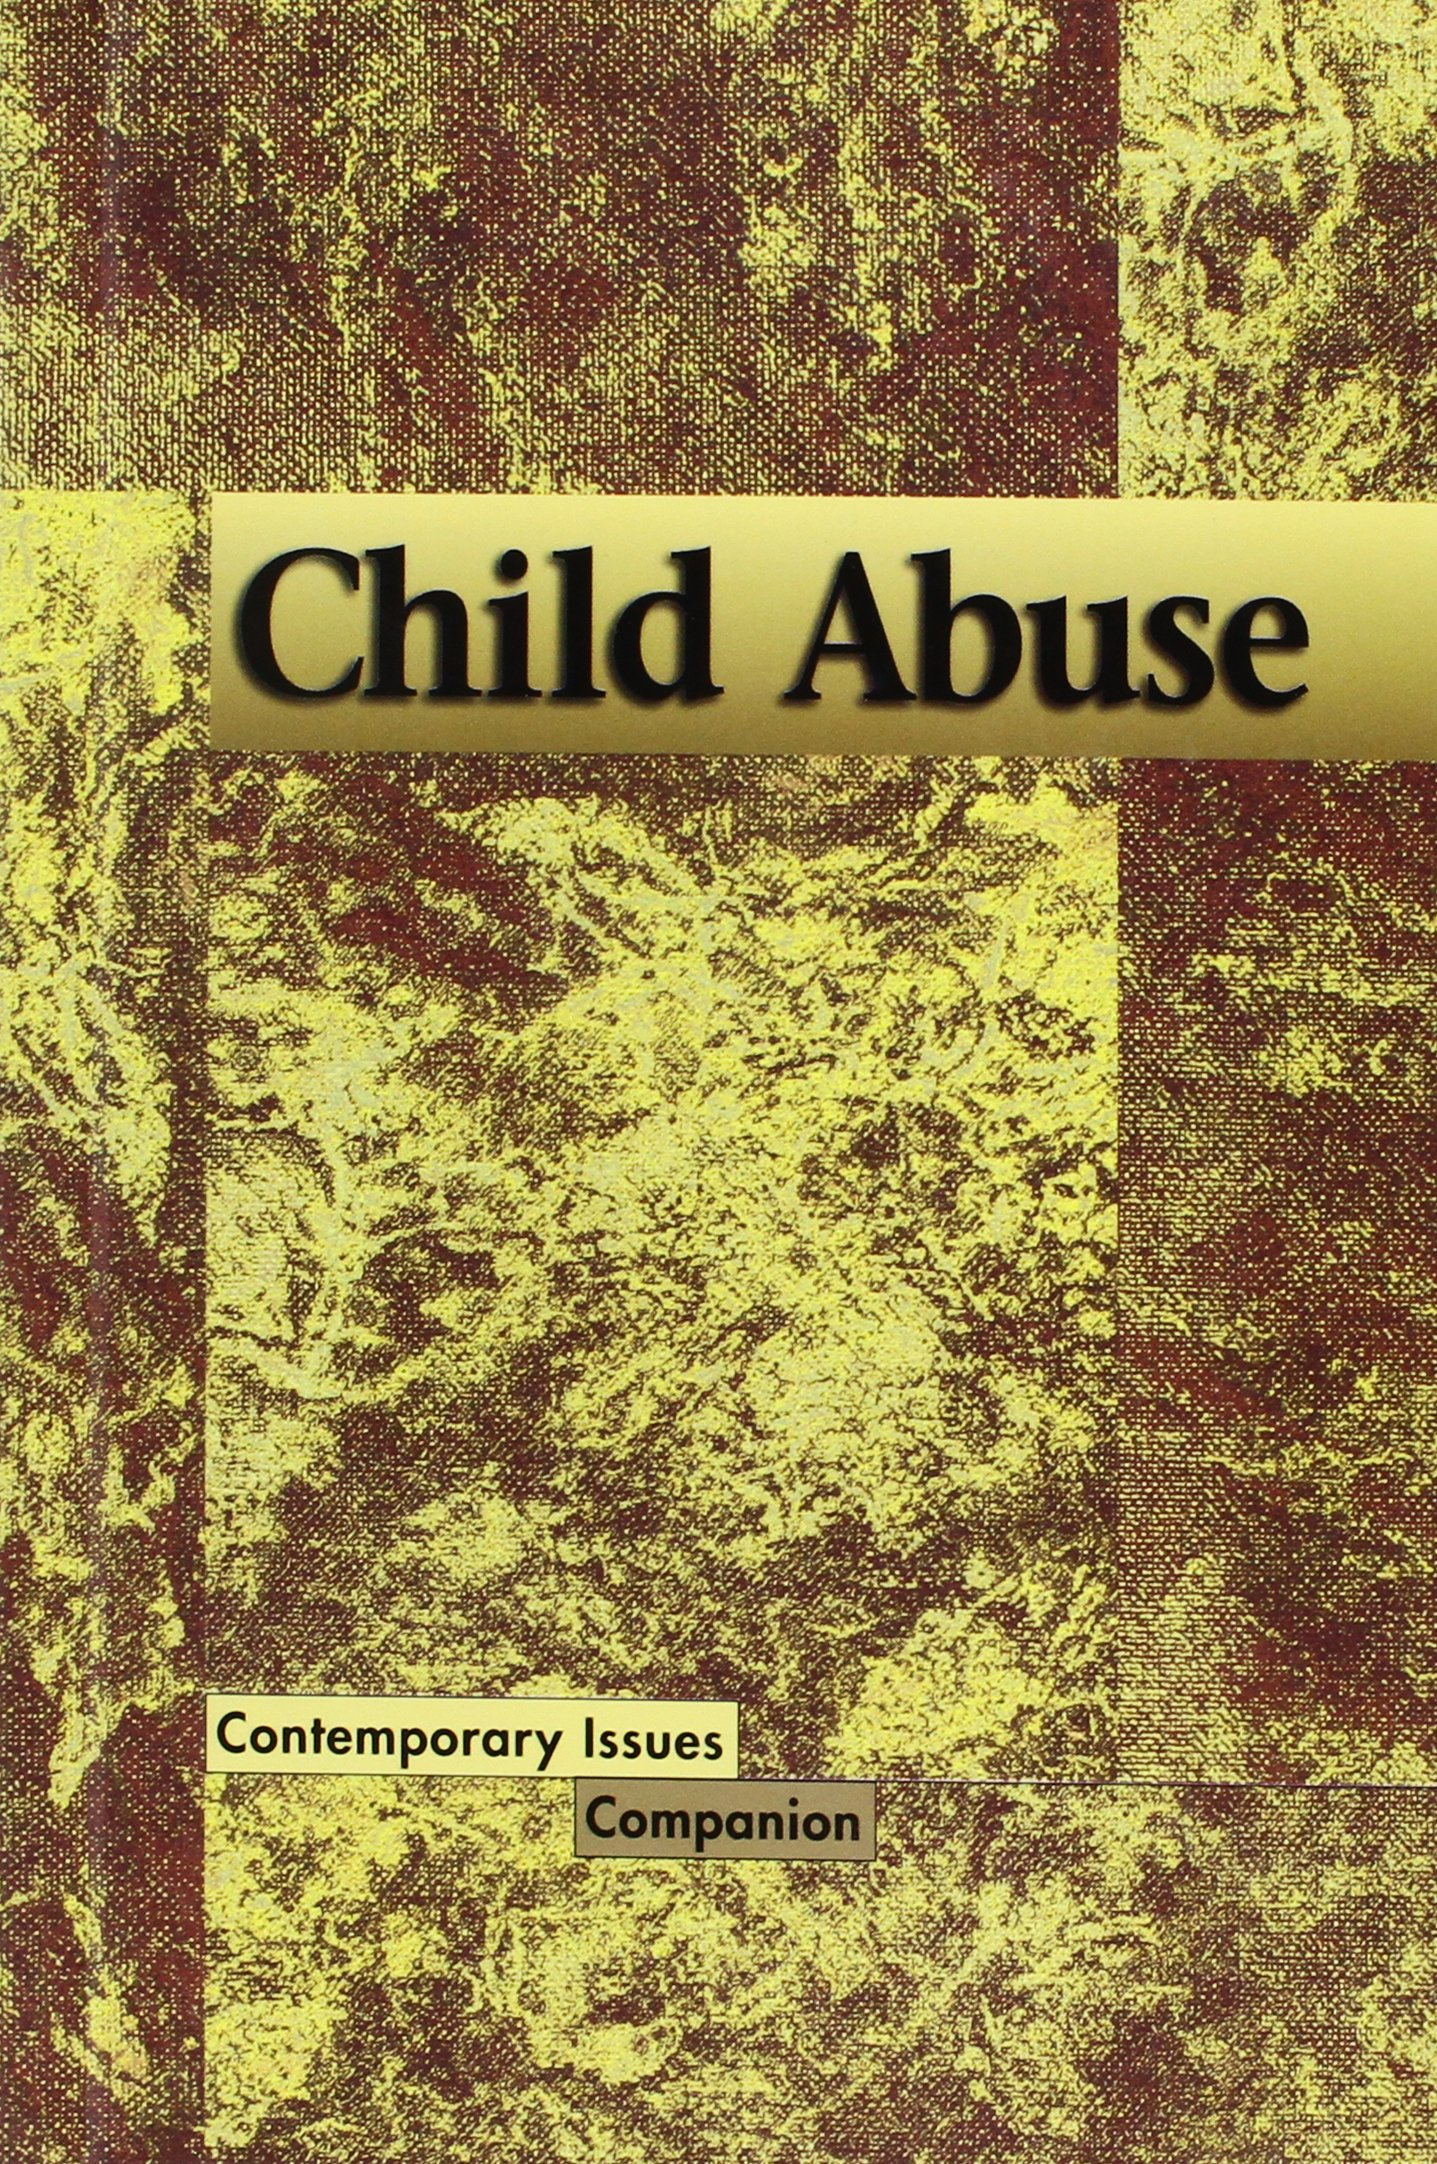 Contemporary Issues Companion - Child Abuse (hardcover edition)